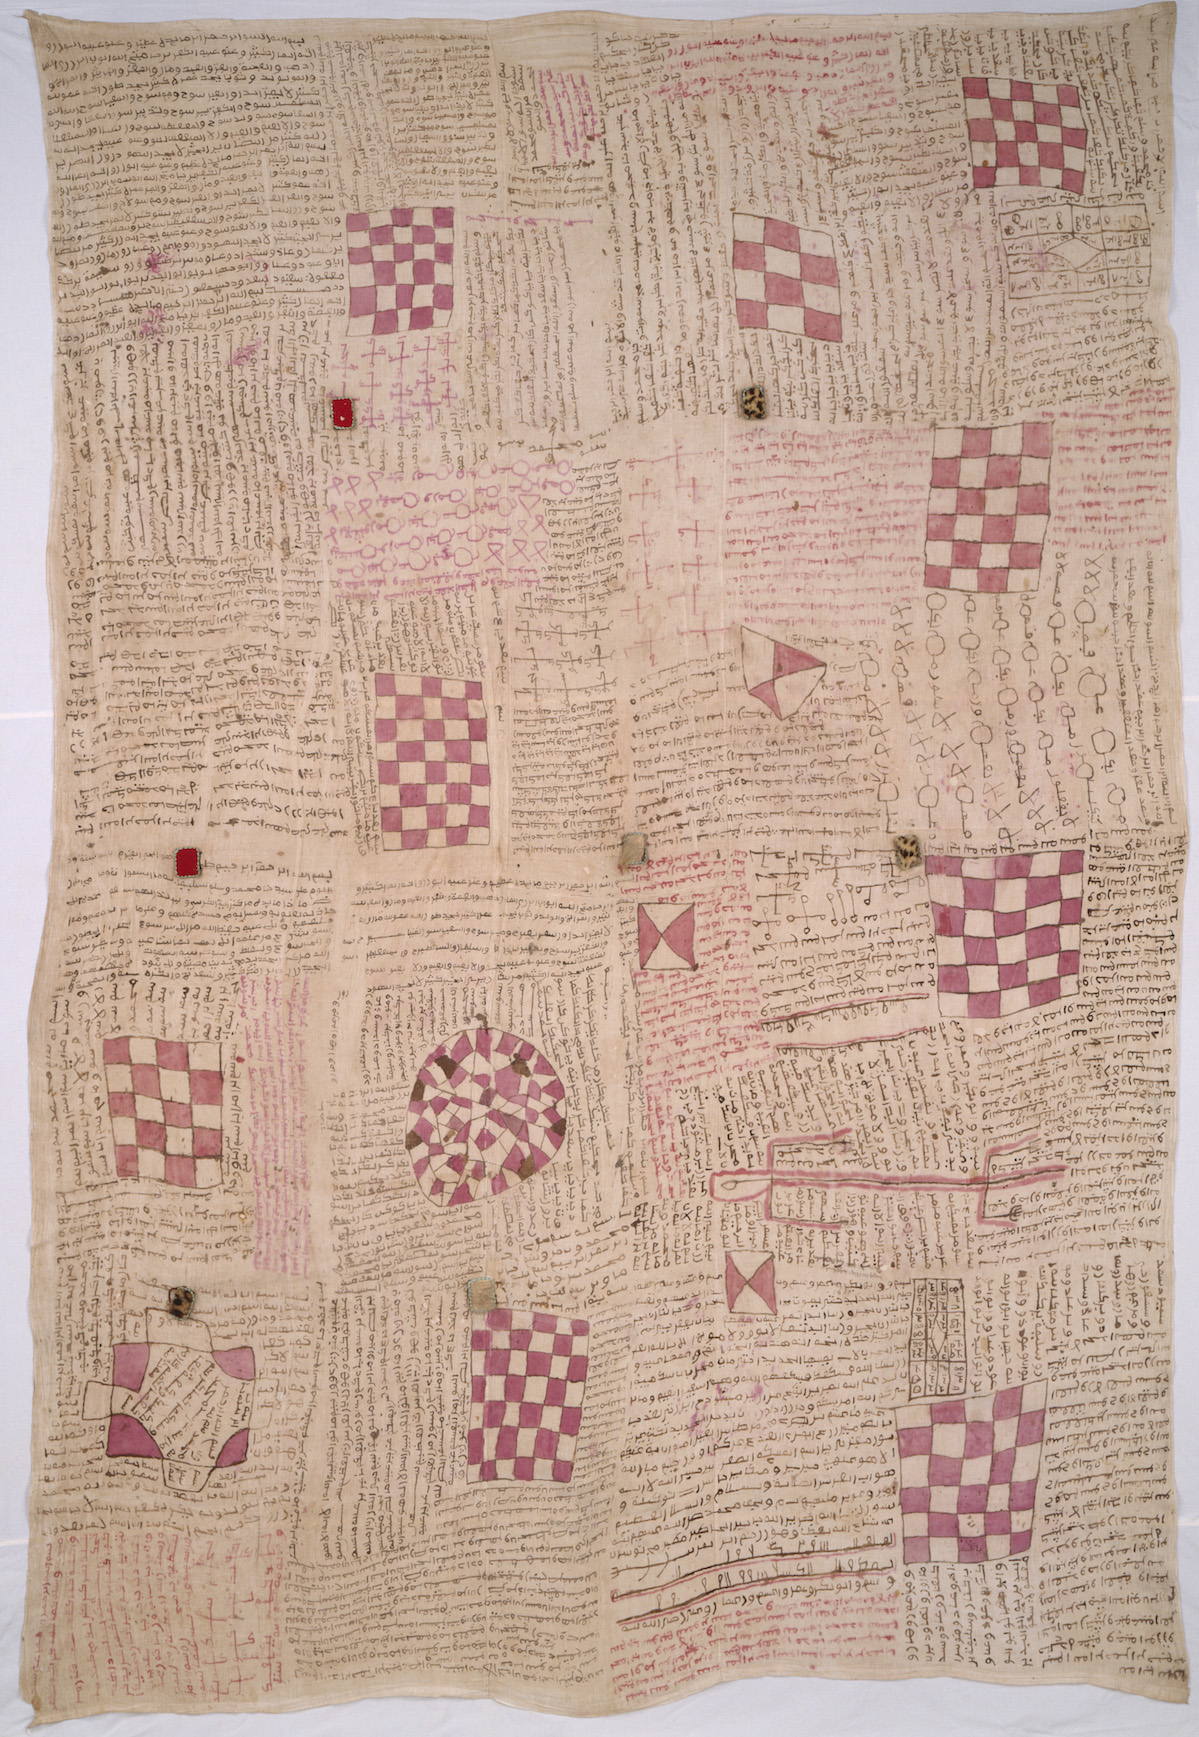 Talismanic textile, probably Senegal, late 19th or early 20th century. Cotton, plain woven panels (4) joined and painted, with amulets of animal hide and felt attached by knotted leather strips, 255.2 x 178.8 cm. Art Institute of Chicago, African and Amerindian Purchase Endowment, 2000.326. Photograph courtesy of The Art Institute of Chicago/Art Resource, NY The Qur'anic passages written across this textile and contained in the amulets attached to it have therapeutic intent. Leather-encased amulets are also worn on the body in the form of necklaces and other items of adornment. The activation of the words of the Qur'an for protection and healing is a widespread Islamic practice.